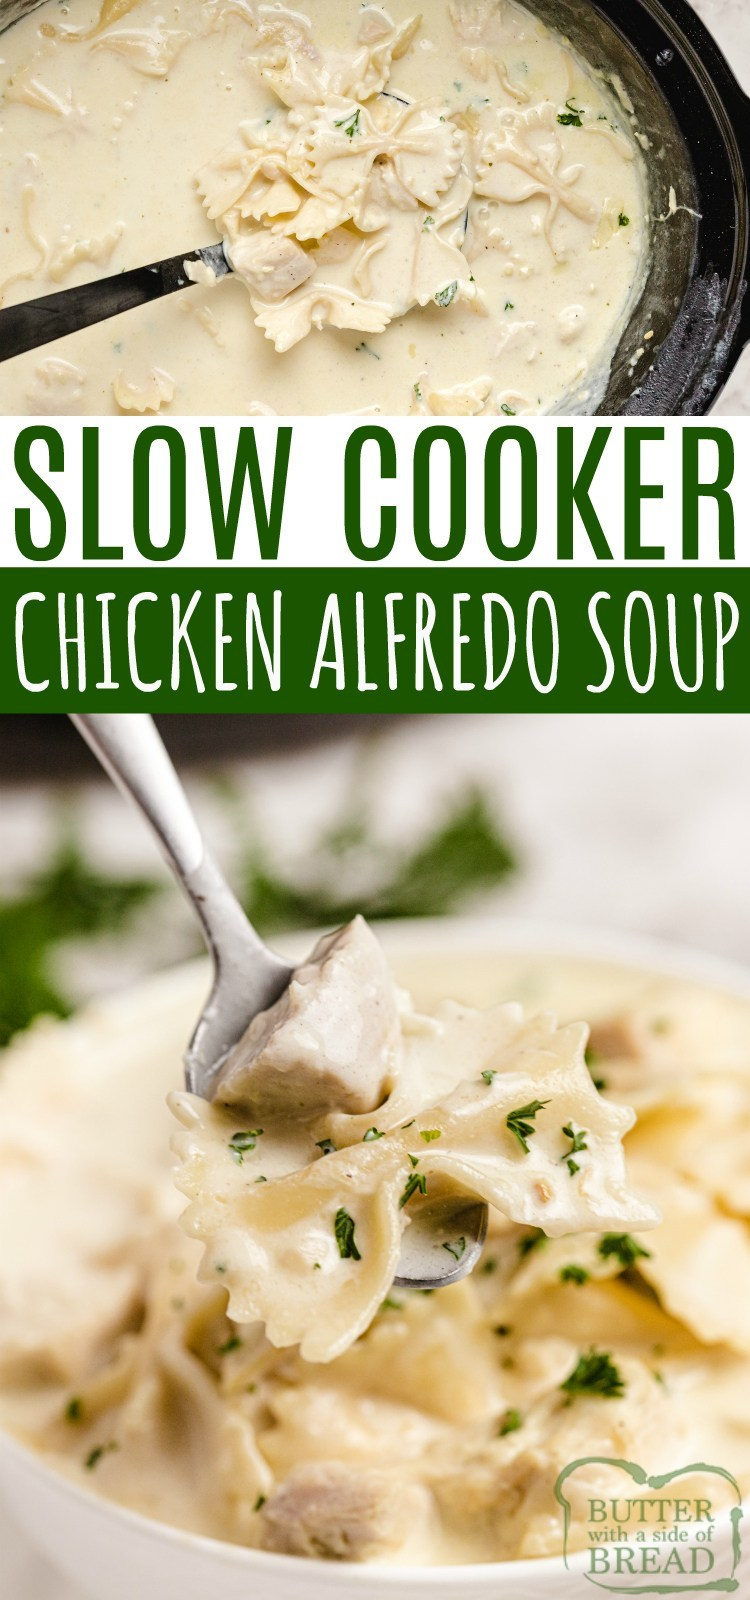 Slow Cooker Chicken Alfredo Soup is smooth, creamy and is made with simple, fresh ingredients. Chicken, milk, cream, garlic and cheese come together to make a soup that tastes just like your favorite alfredo dish...in a delicious soup recipe.